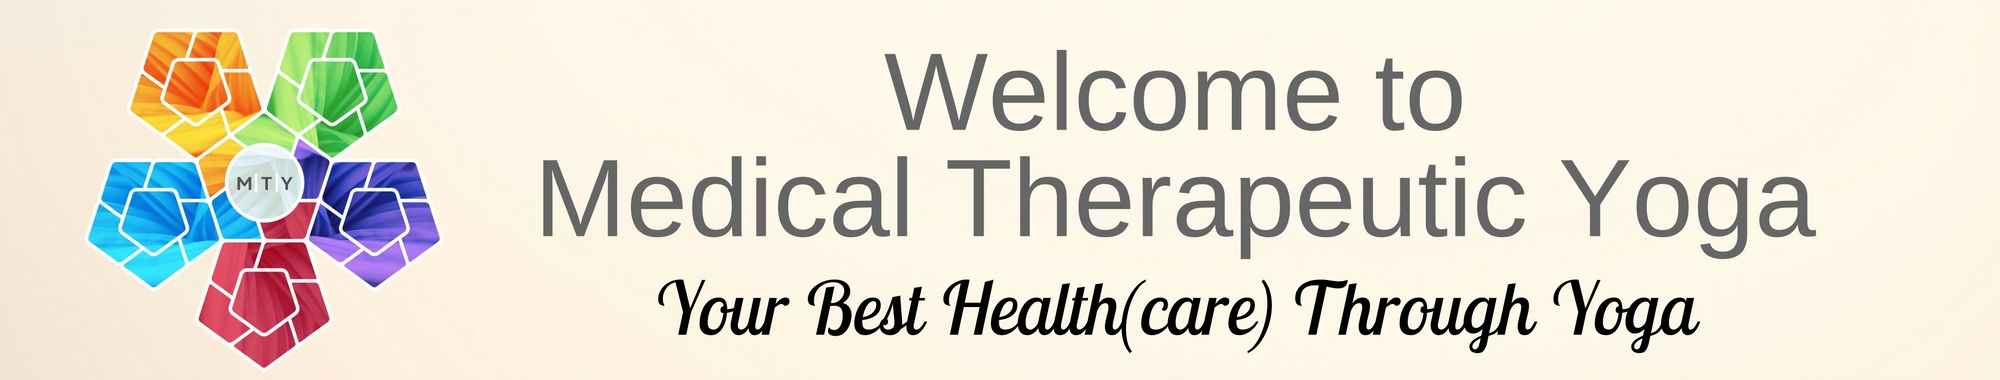 welcome-to-medical-therapeutic-yoga